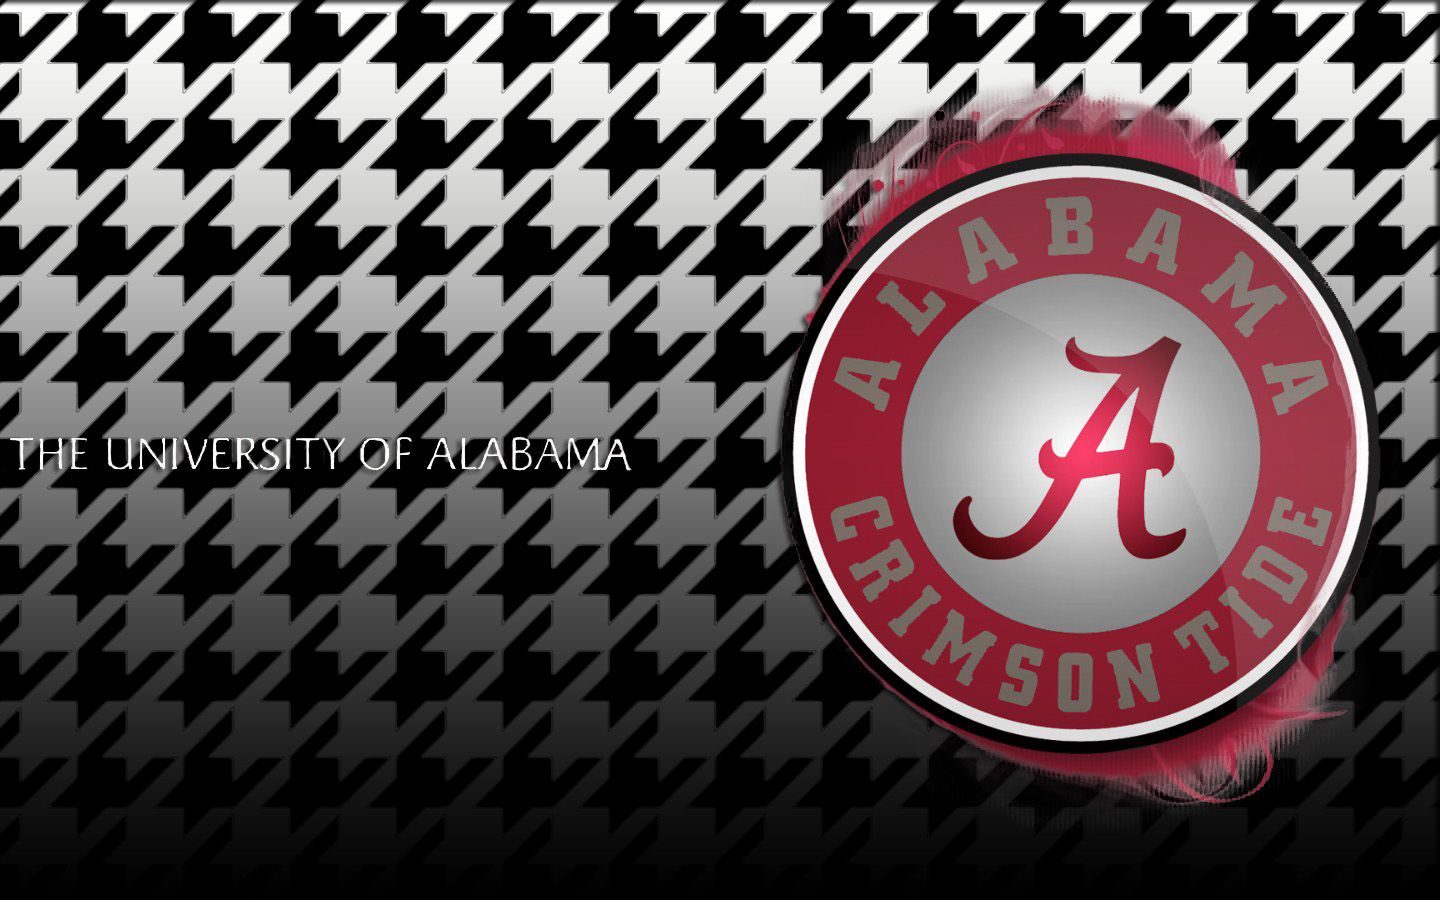 Alabama Crimson Tide Wallpaper Alabama Crimson Tide Logo